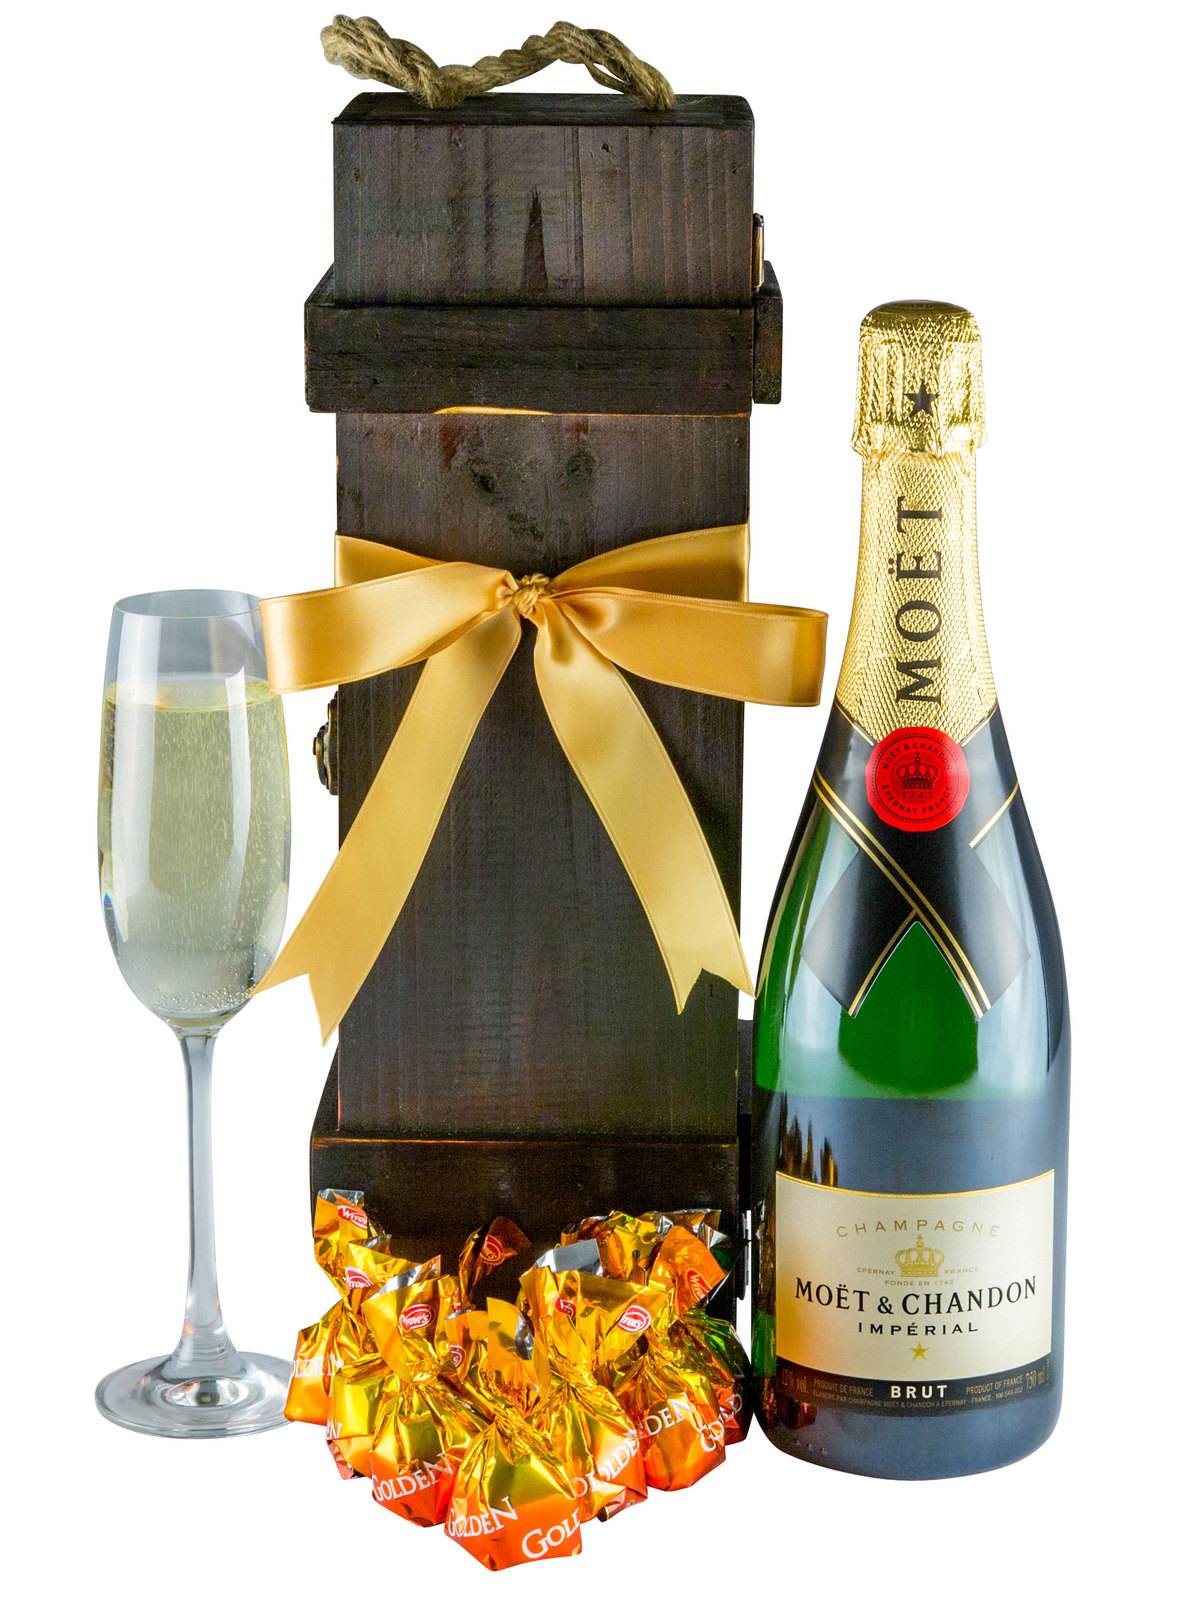 Wine Amp Chocolate Amp Champagne Gourmet Gift Baskets Hampers